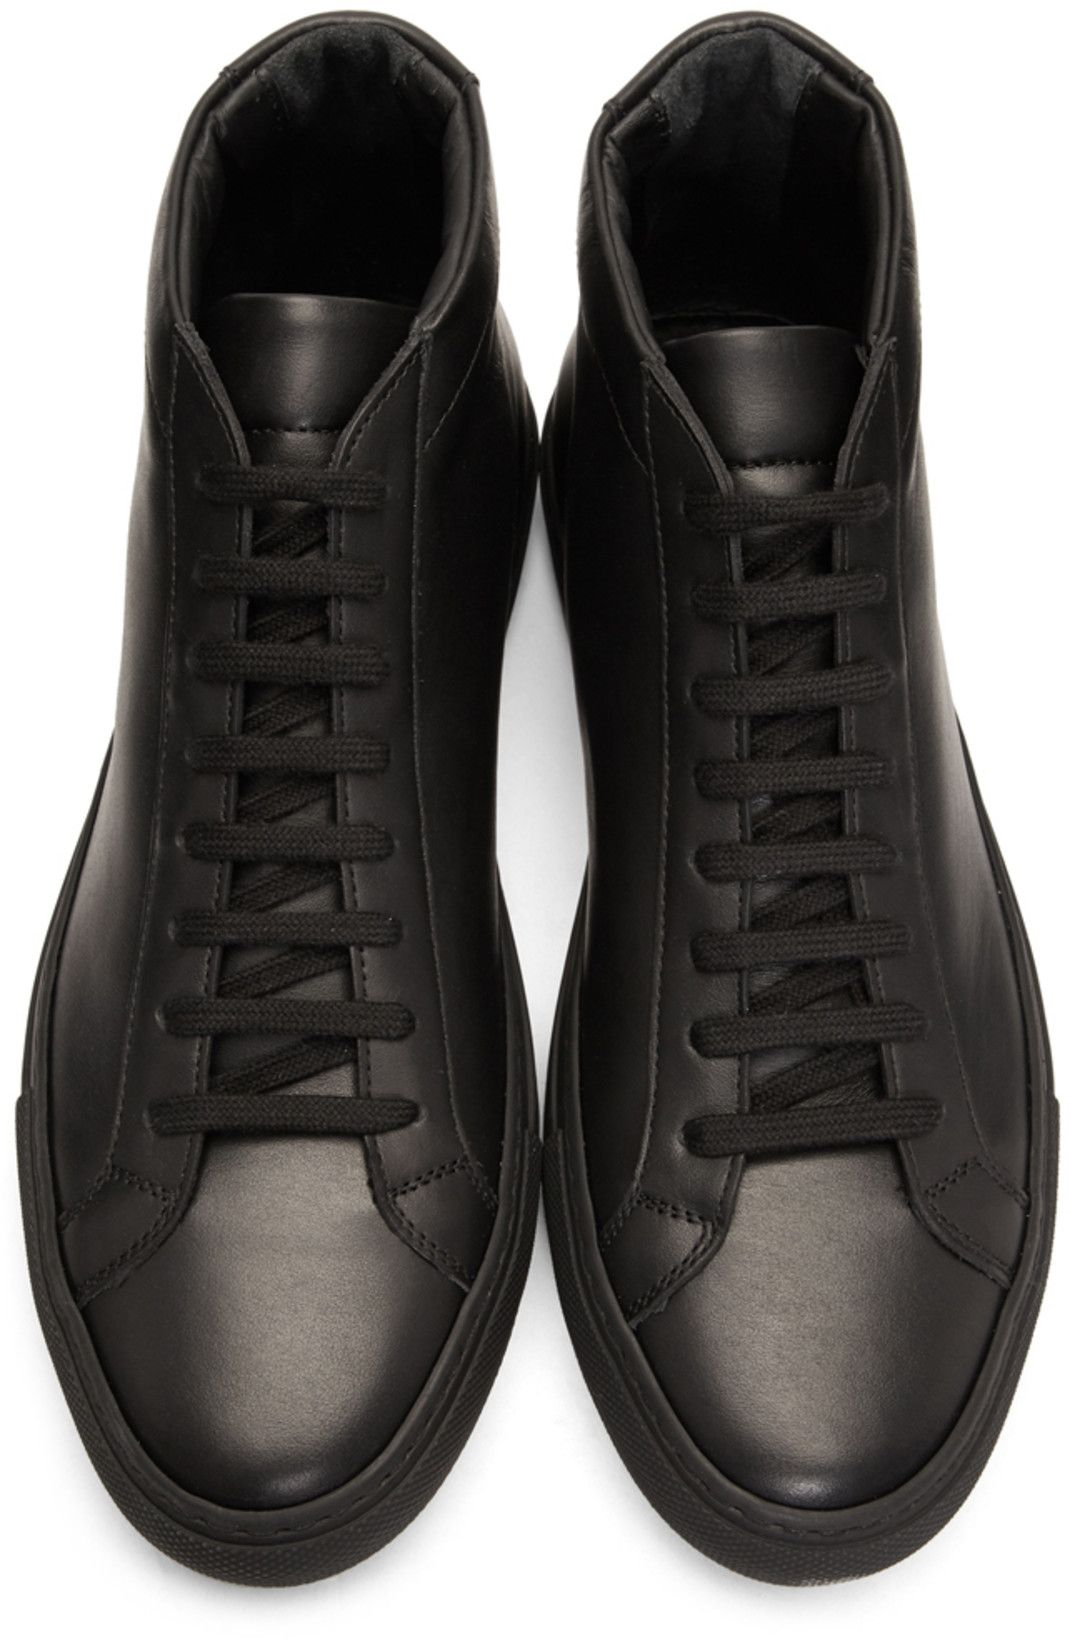 factory price 859d6 5be59 Common Projects - Black Original Achilles Mid Sneakers